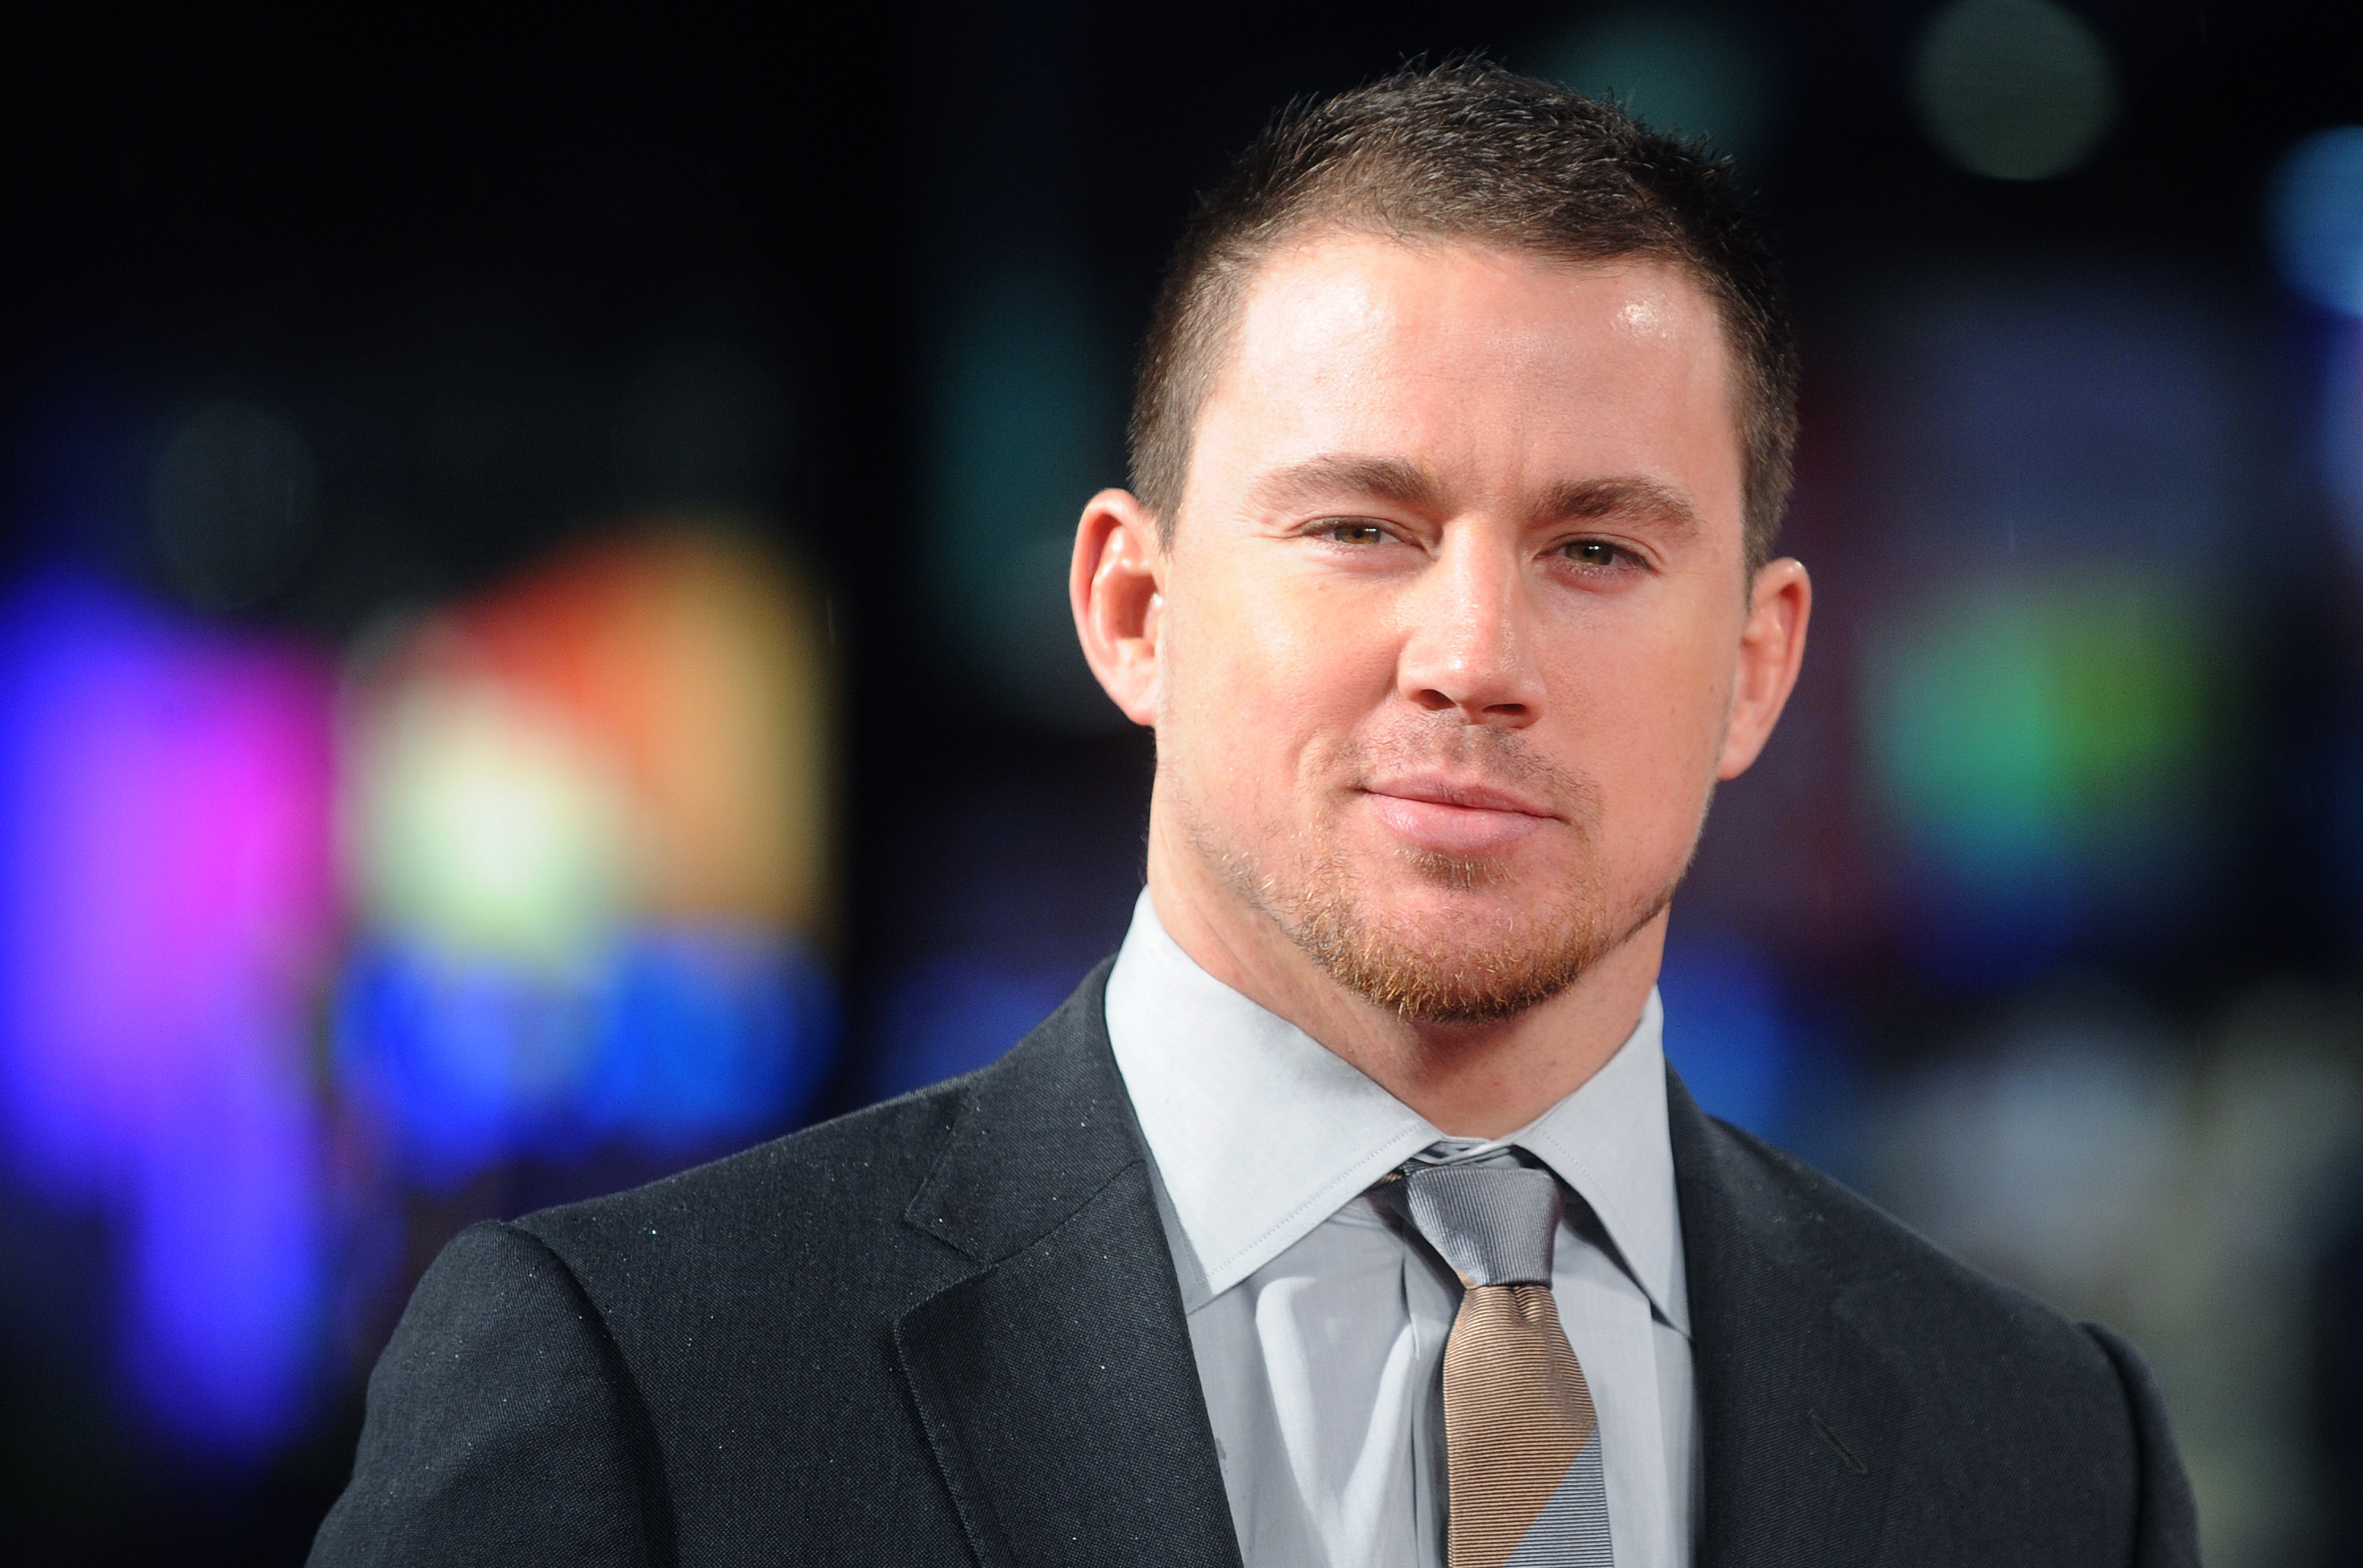 Is Channing Tatum insane or is this real!?!?